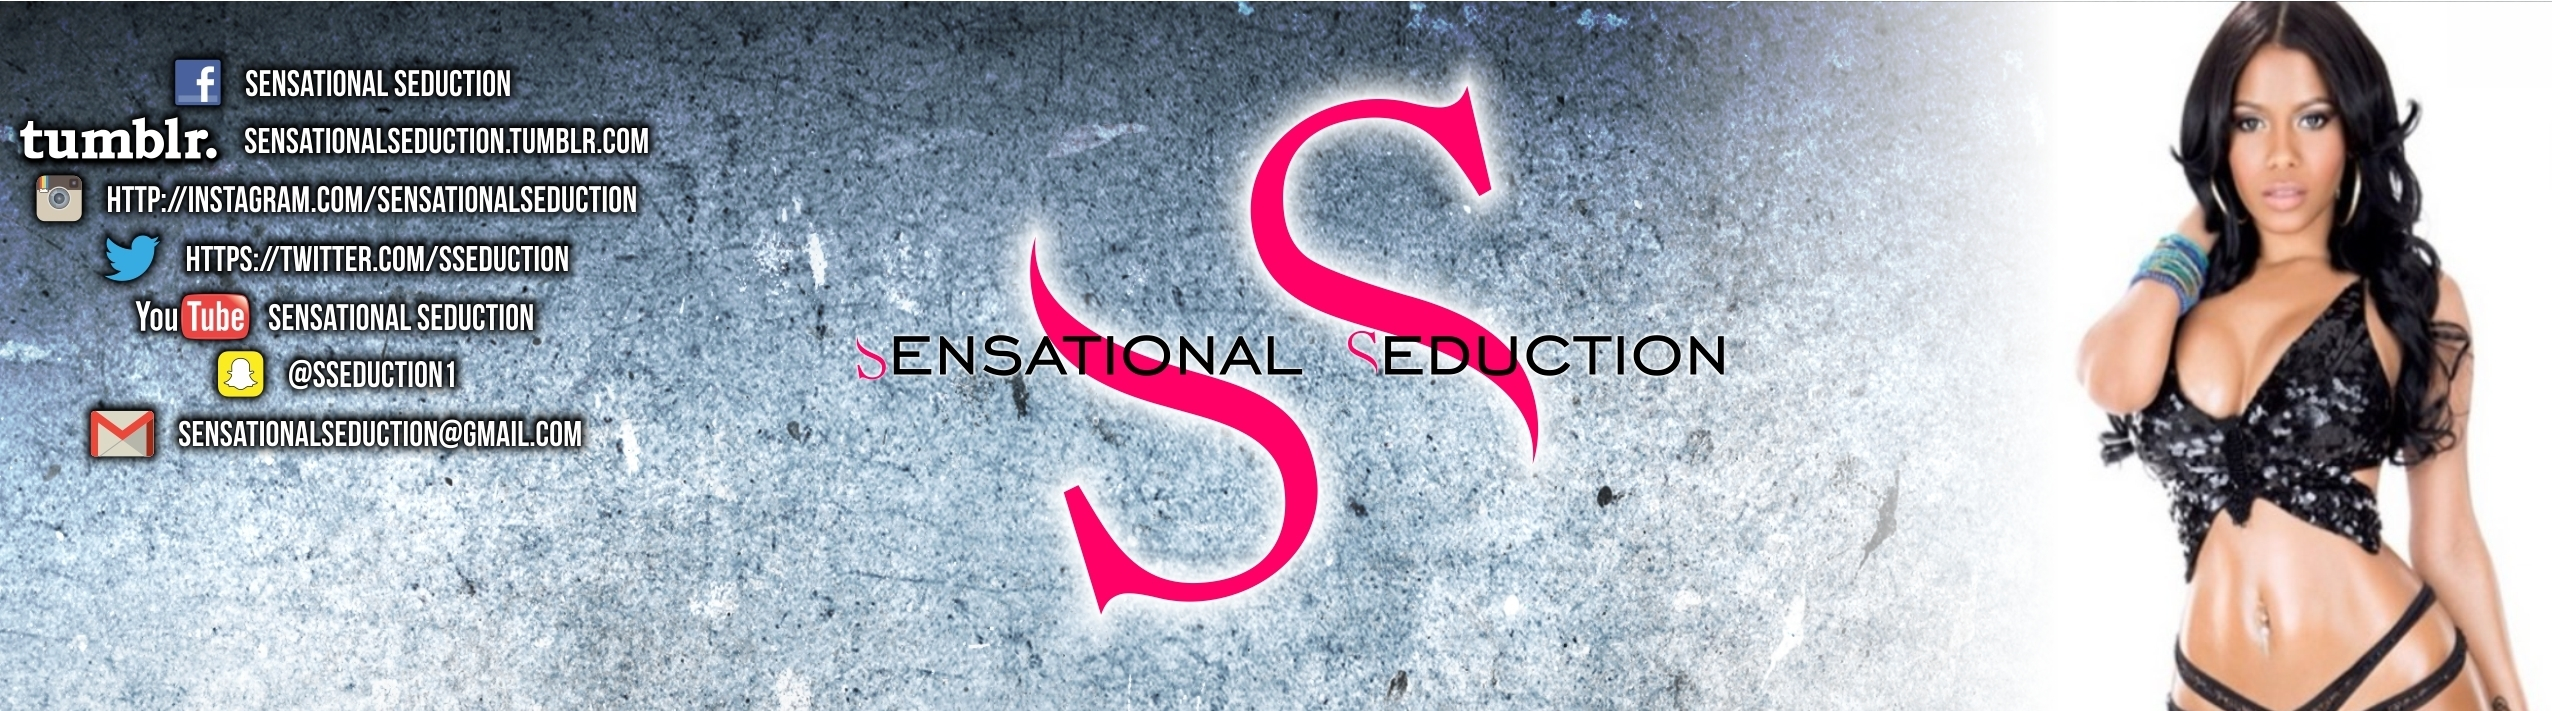 Sensational seduction other logo